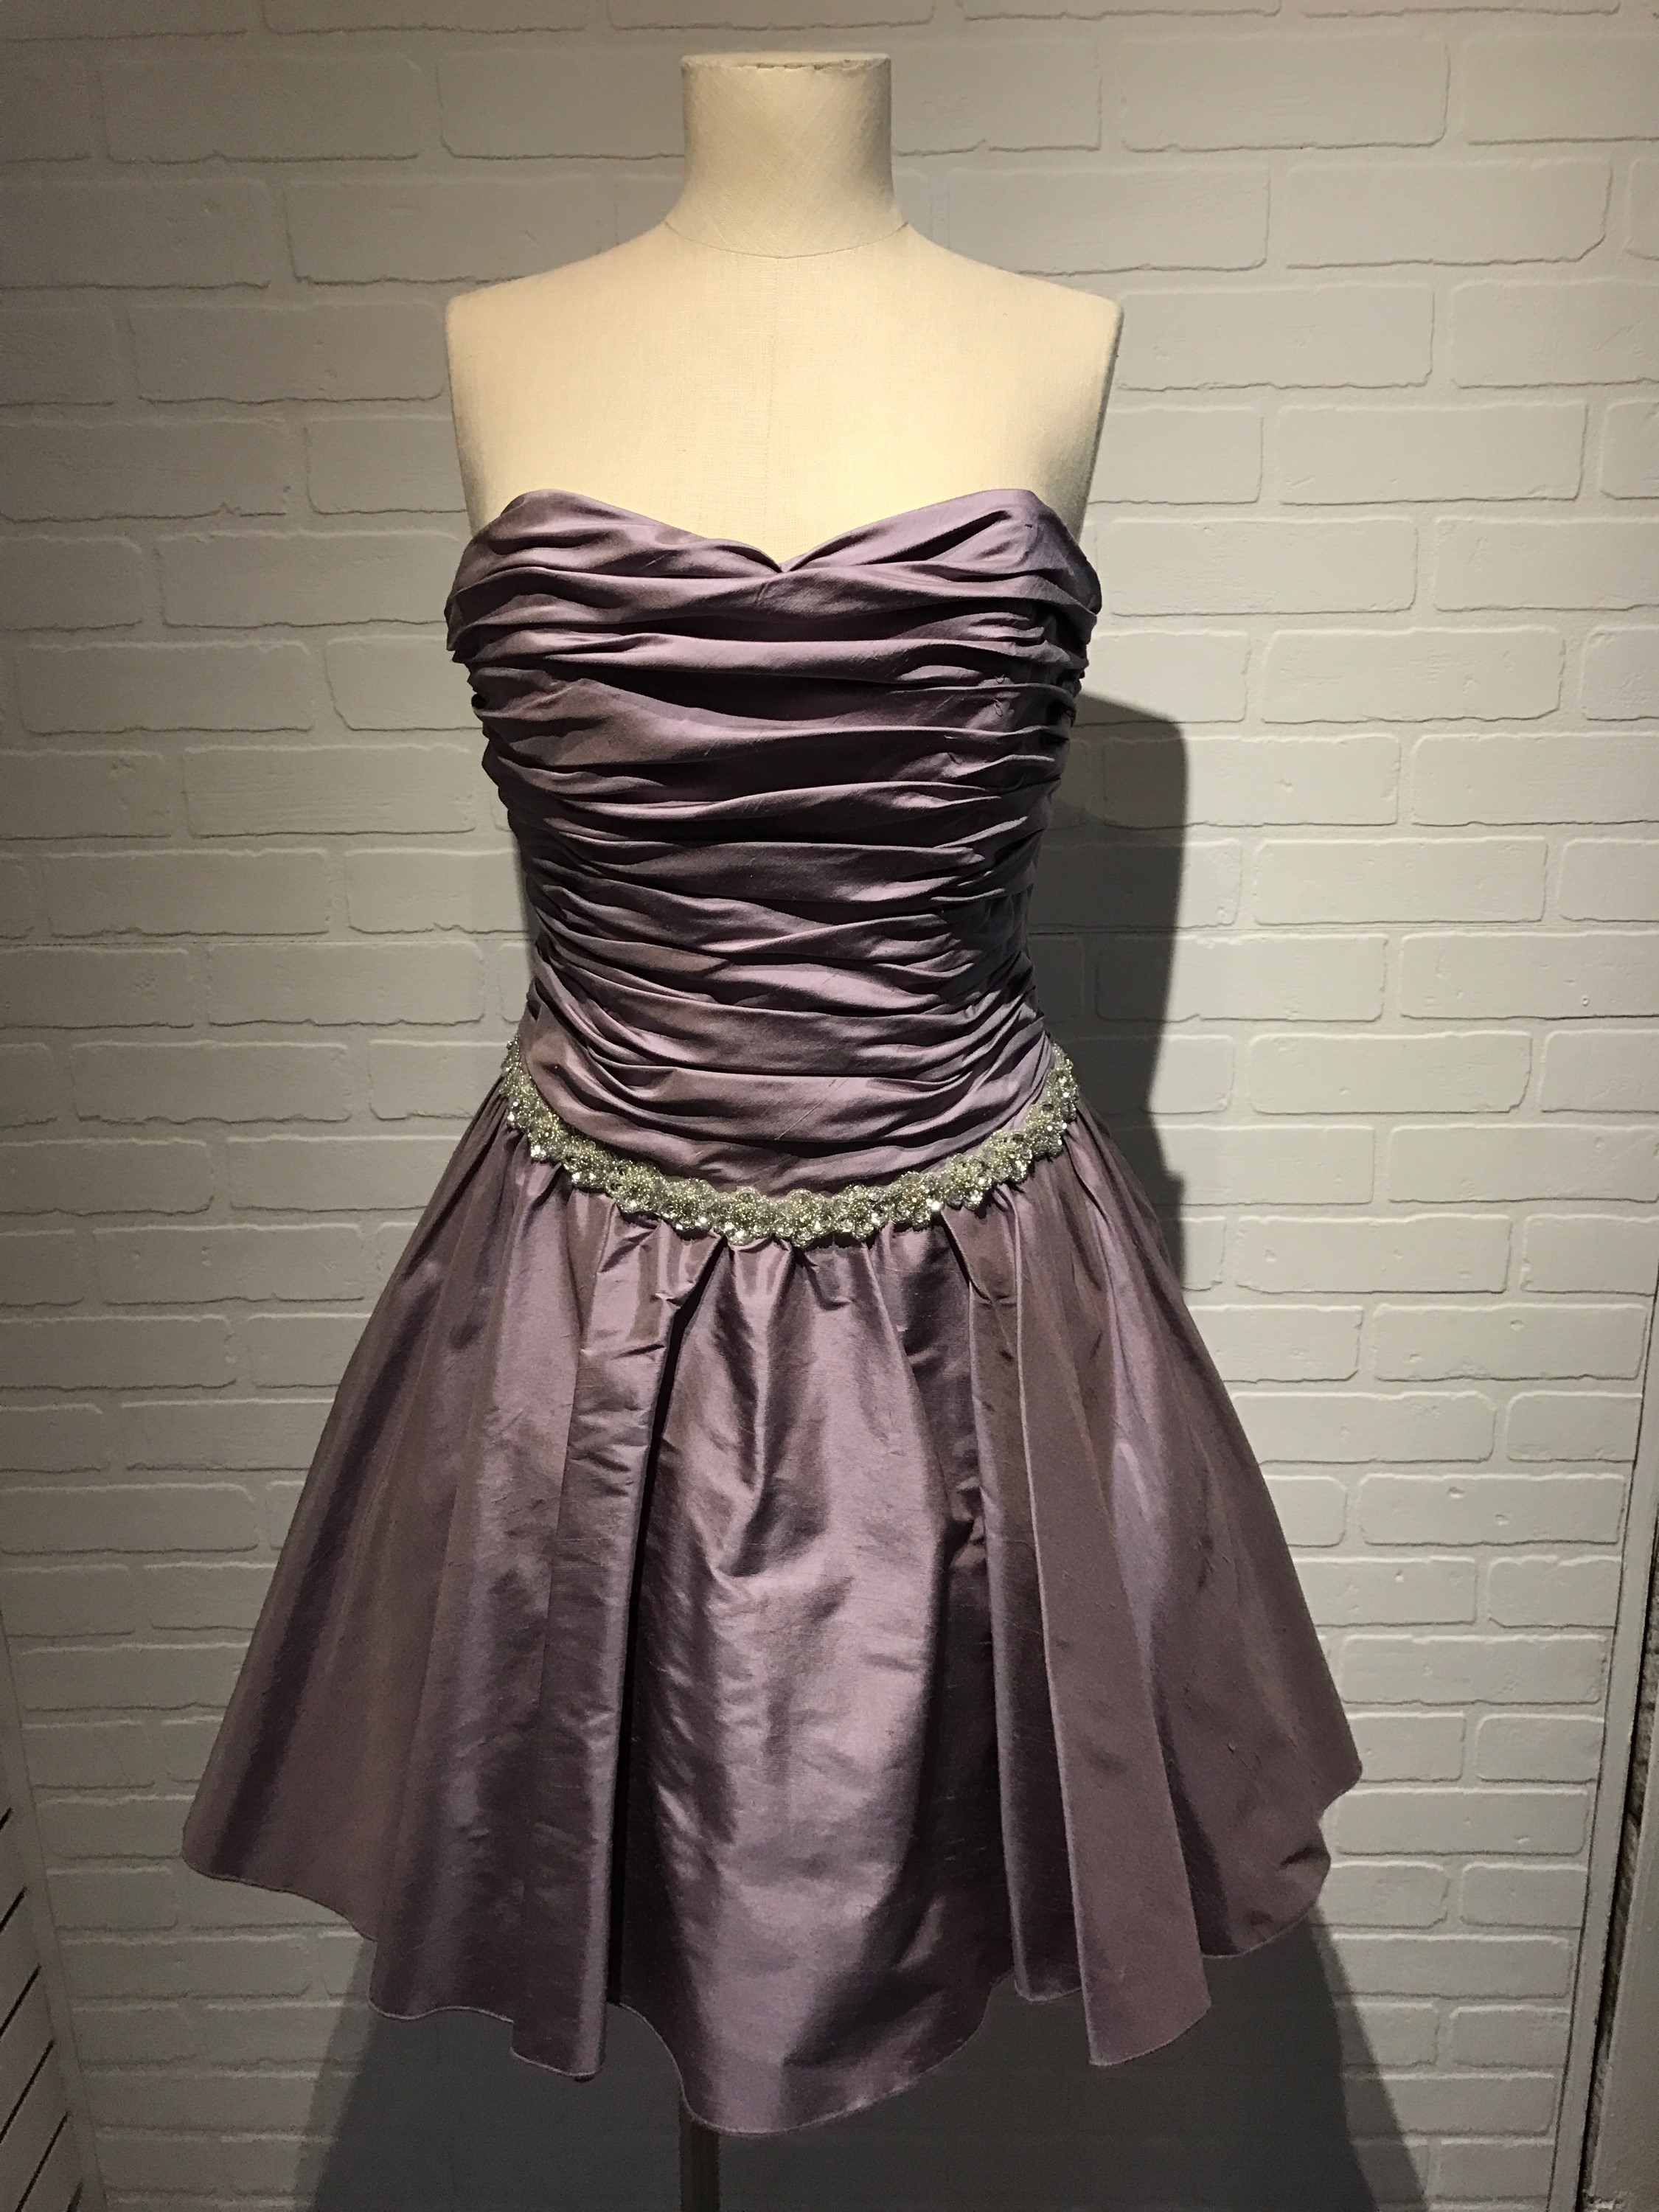 CW-Design-Size-Medium-Purple-Dress_4226A.jpg